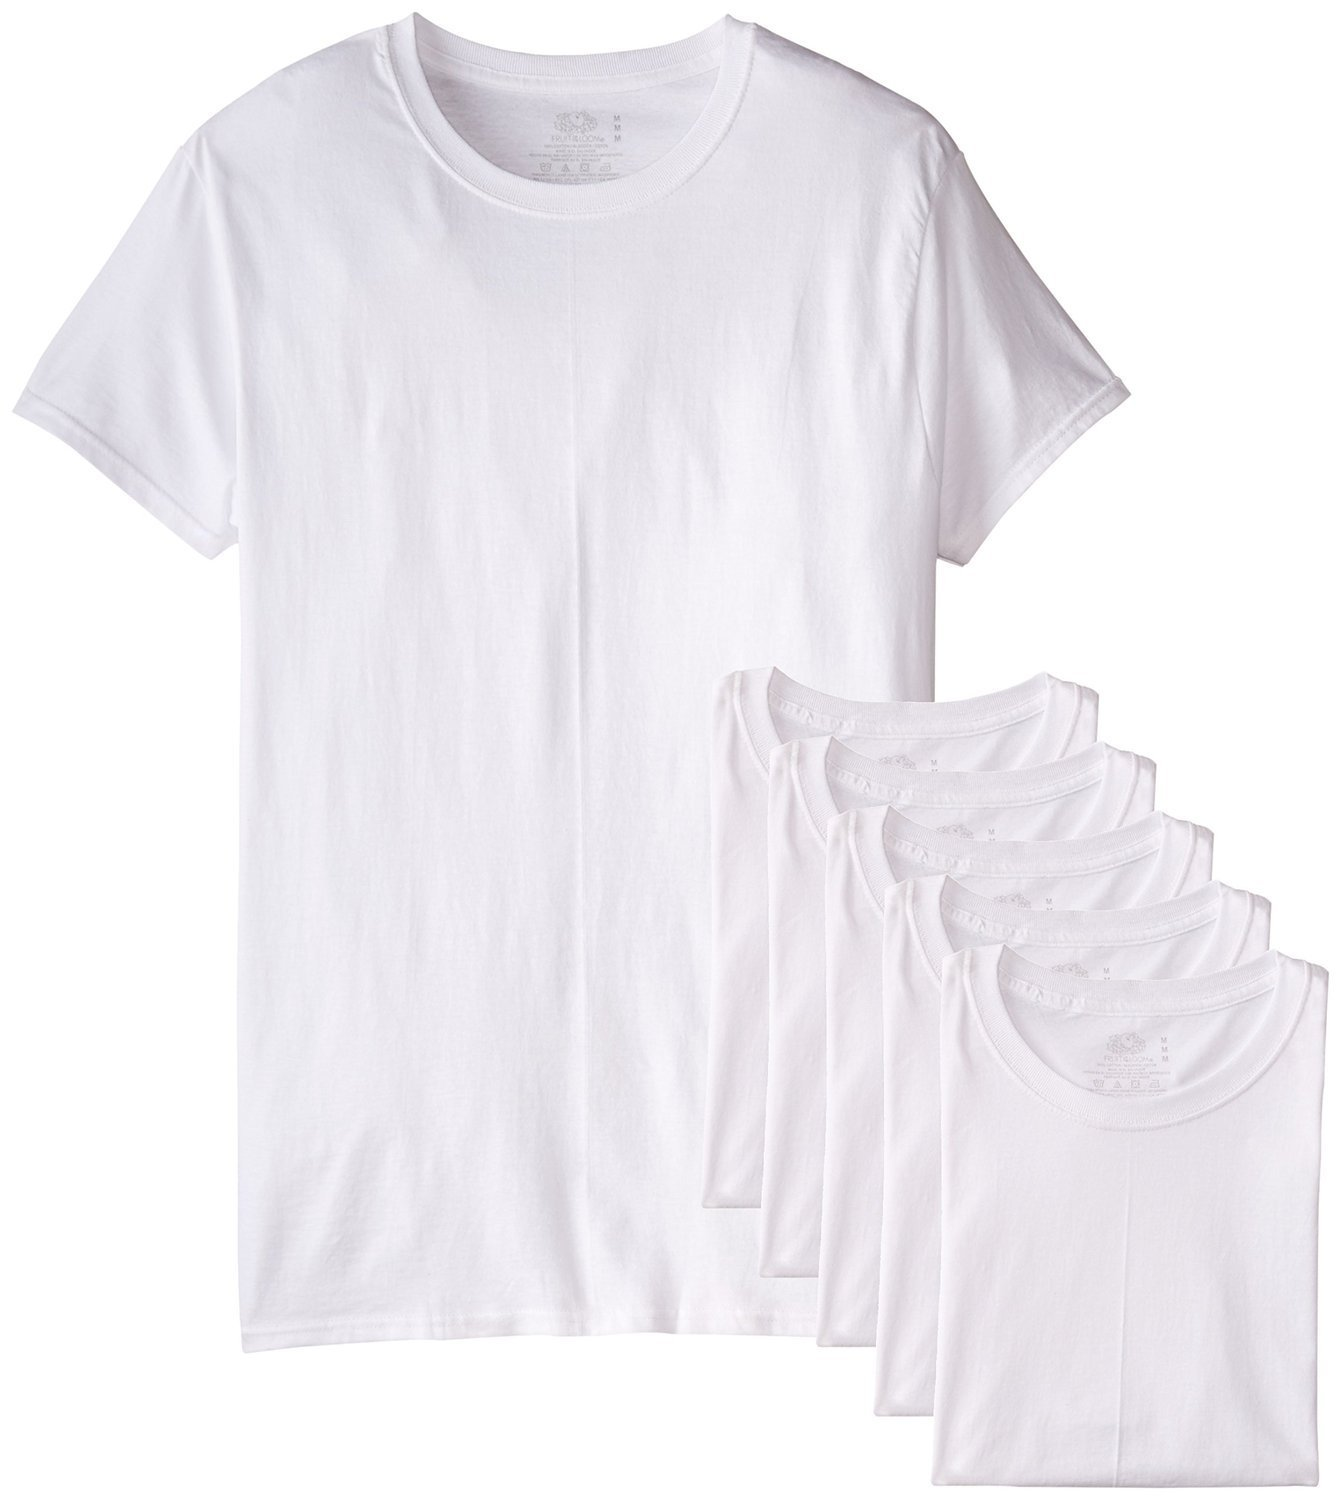 Fruit of the Loom Men's Stay Tucked Crew T-Shirt - 4X-Large - White (Pack of 6) by Fruit of the Loom